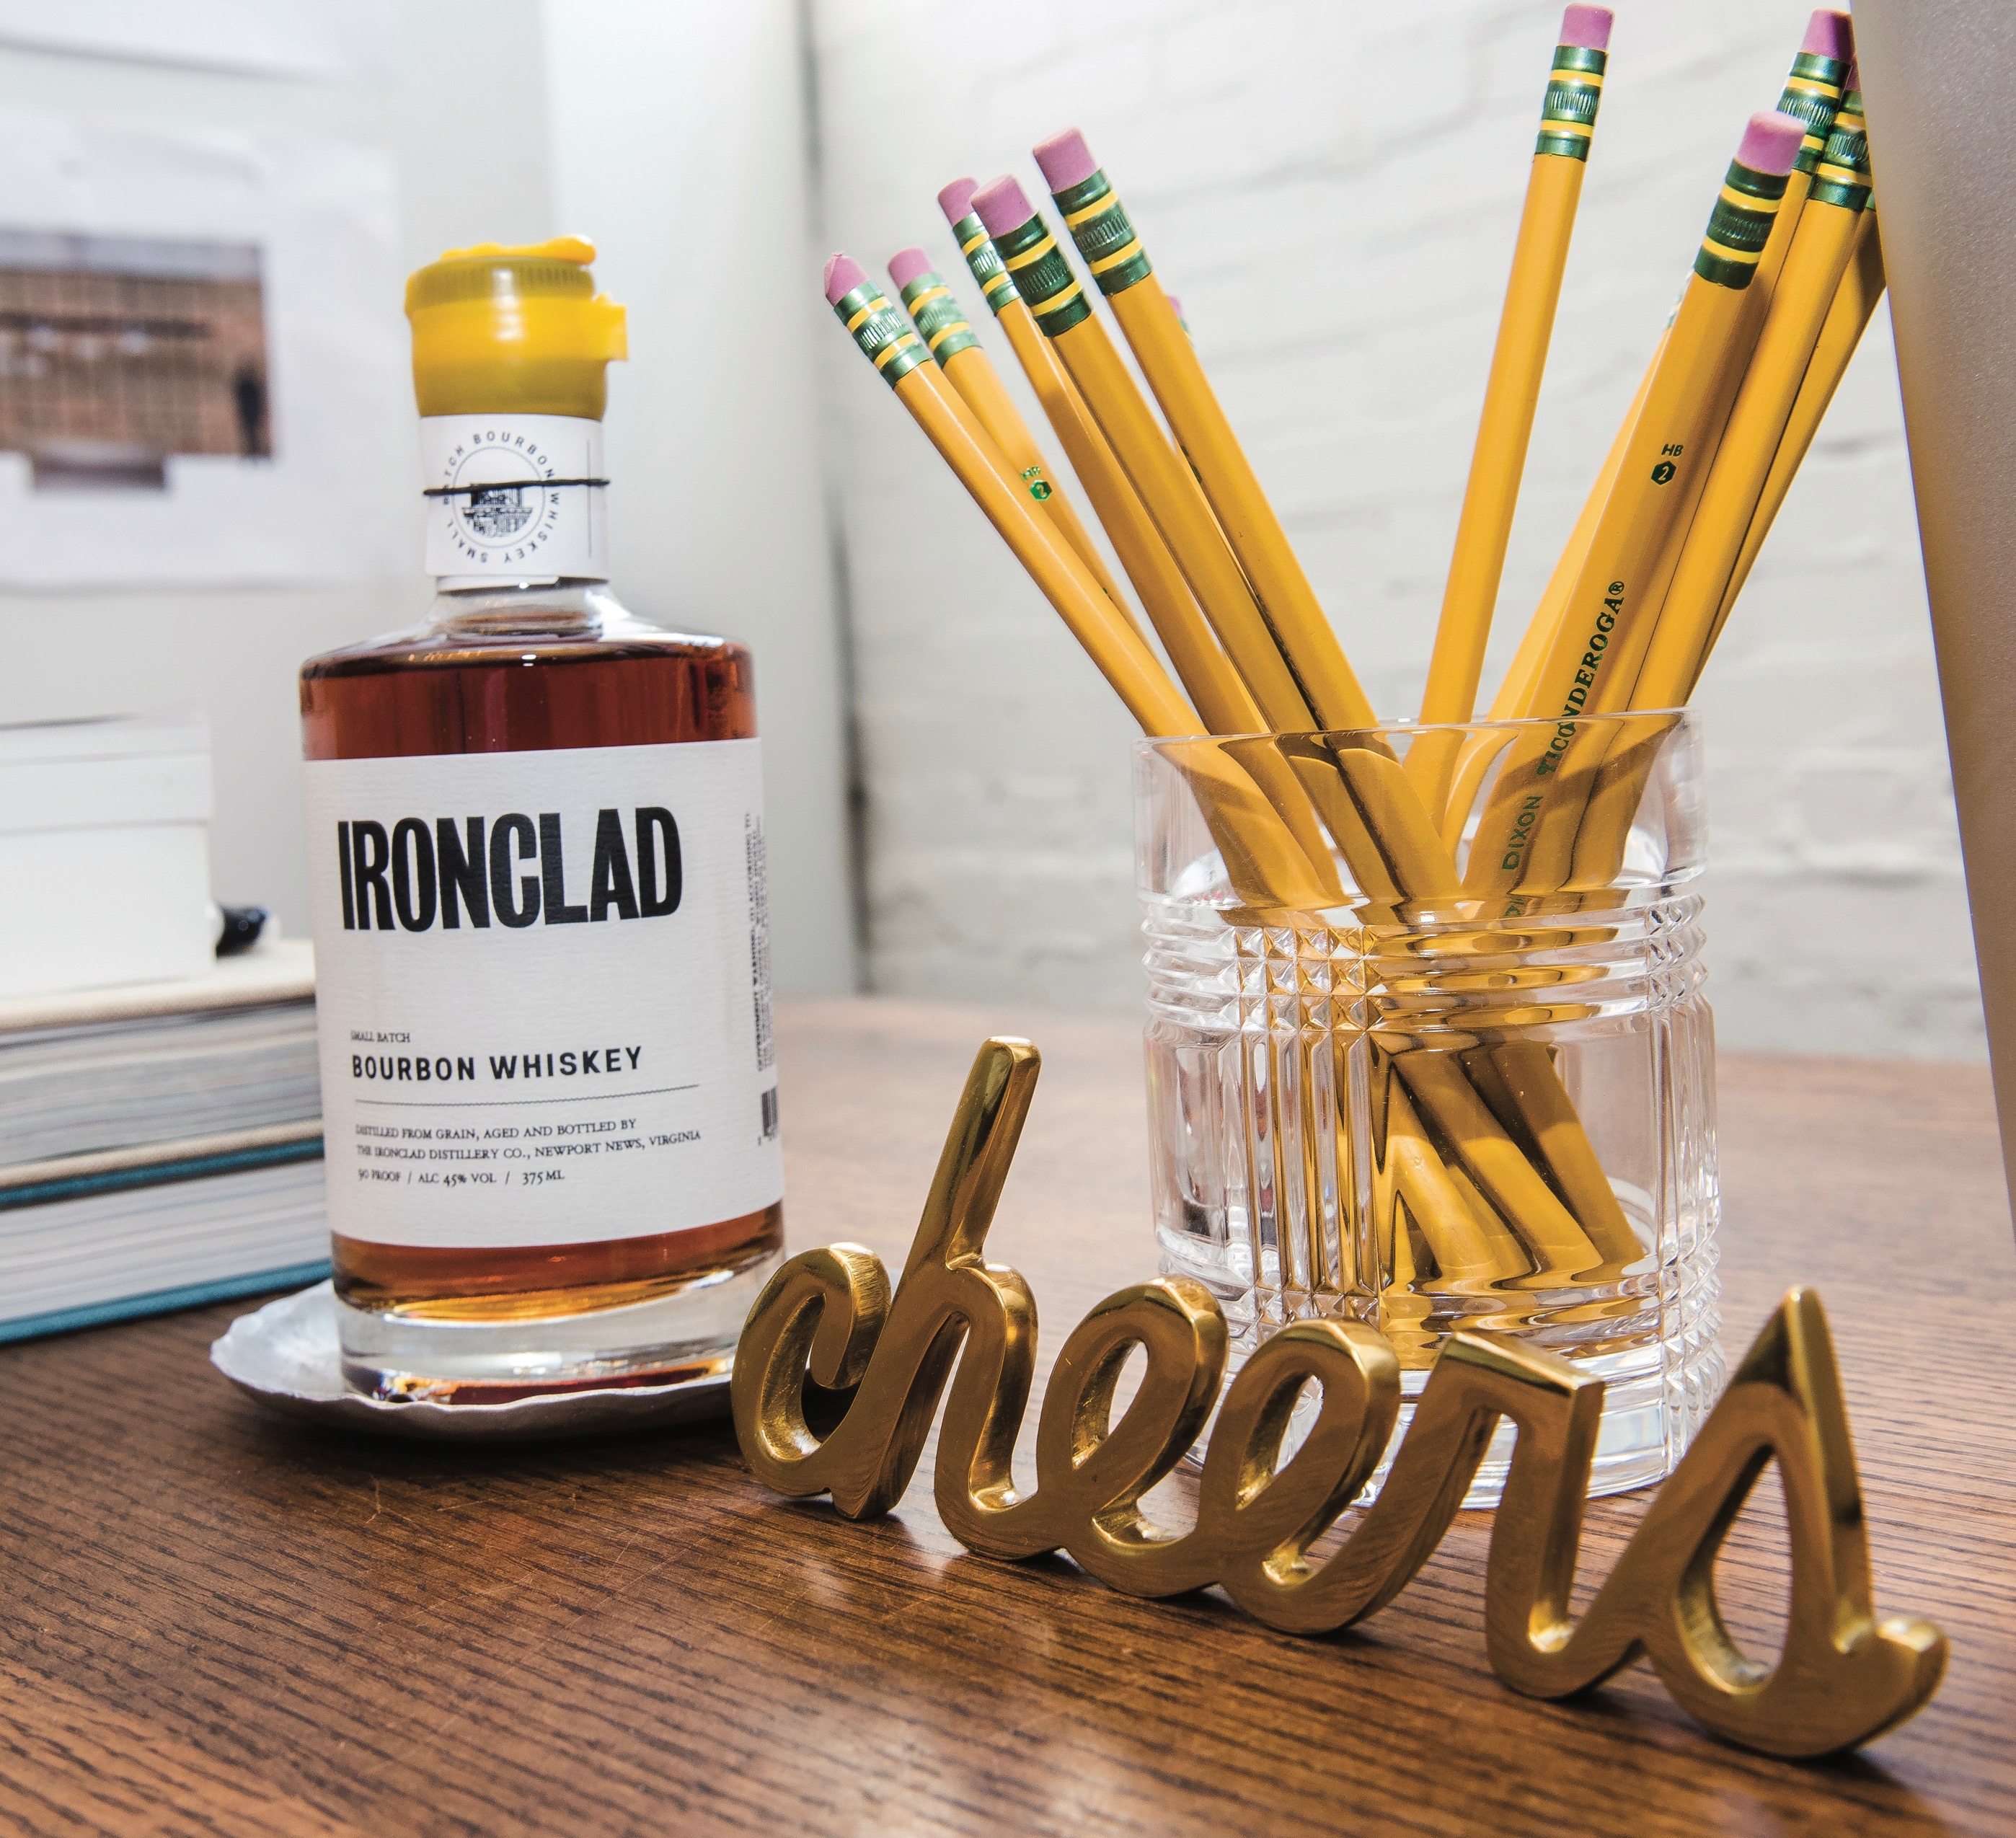 Ironclad Distillery Co., Newport News, Ironclad Bourbon Whiskey